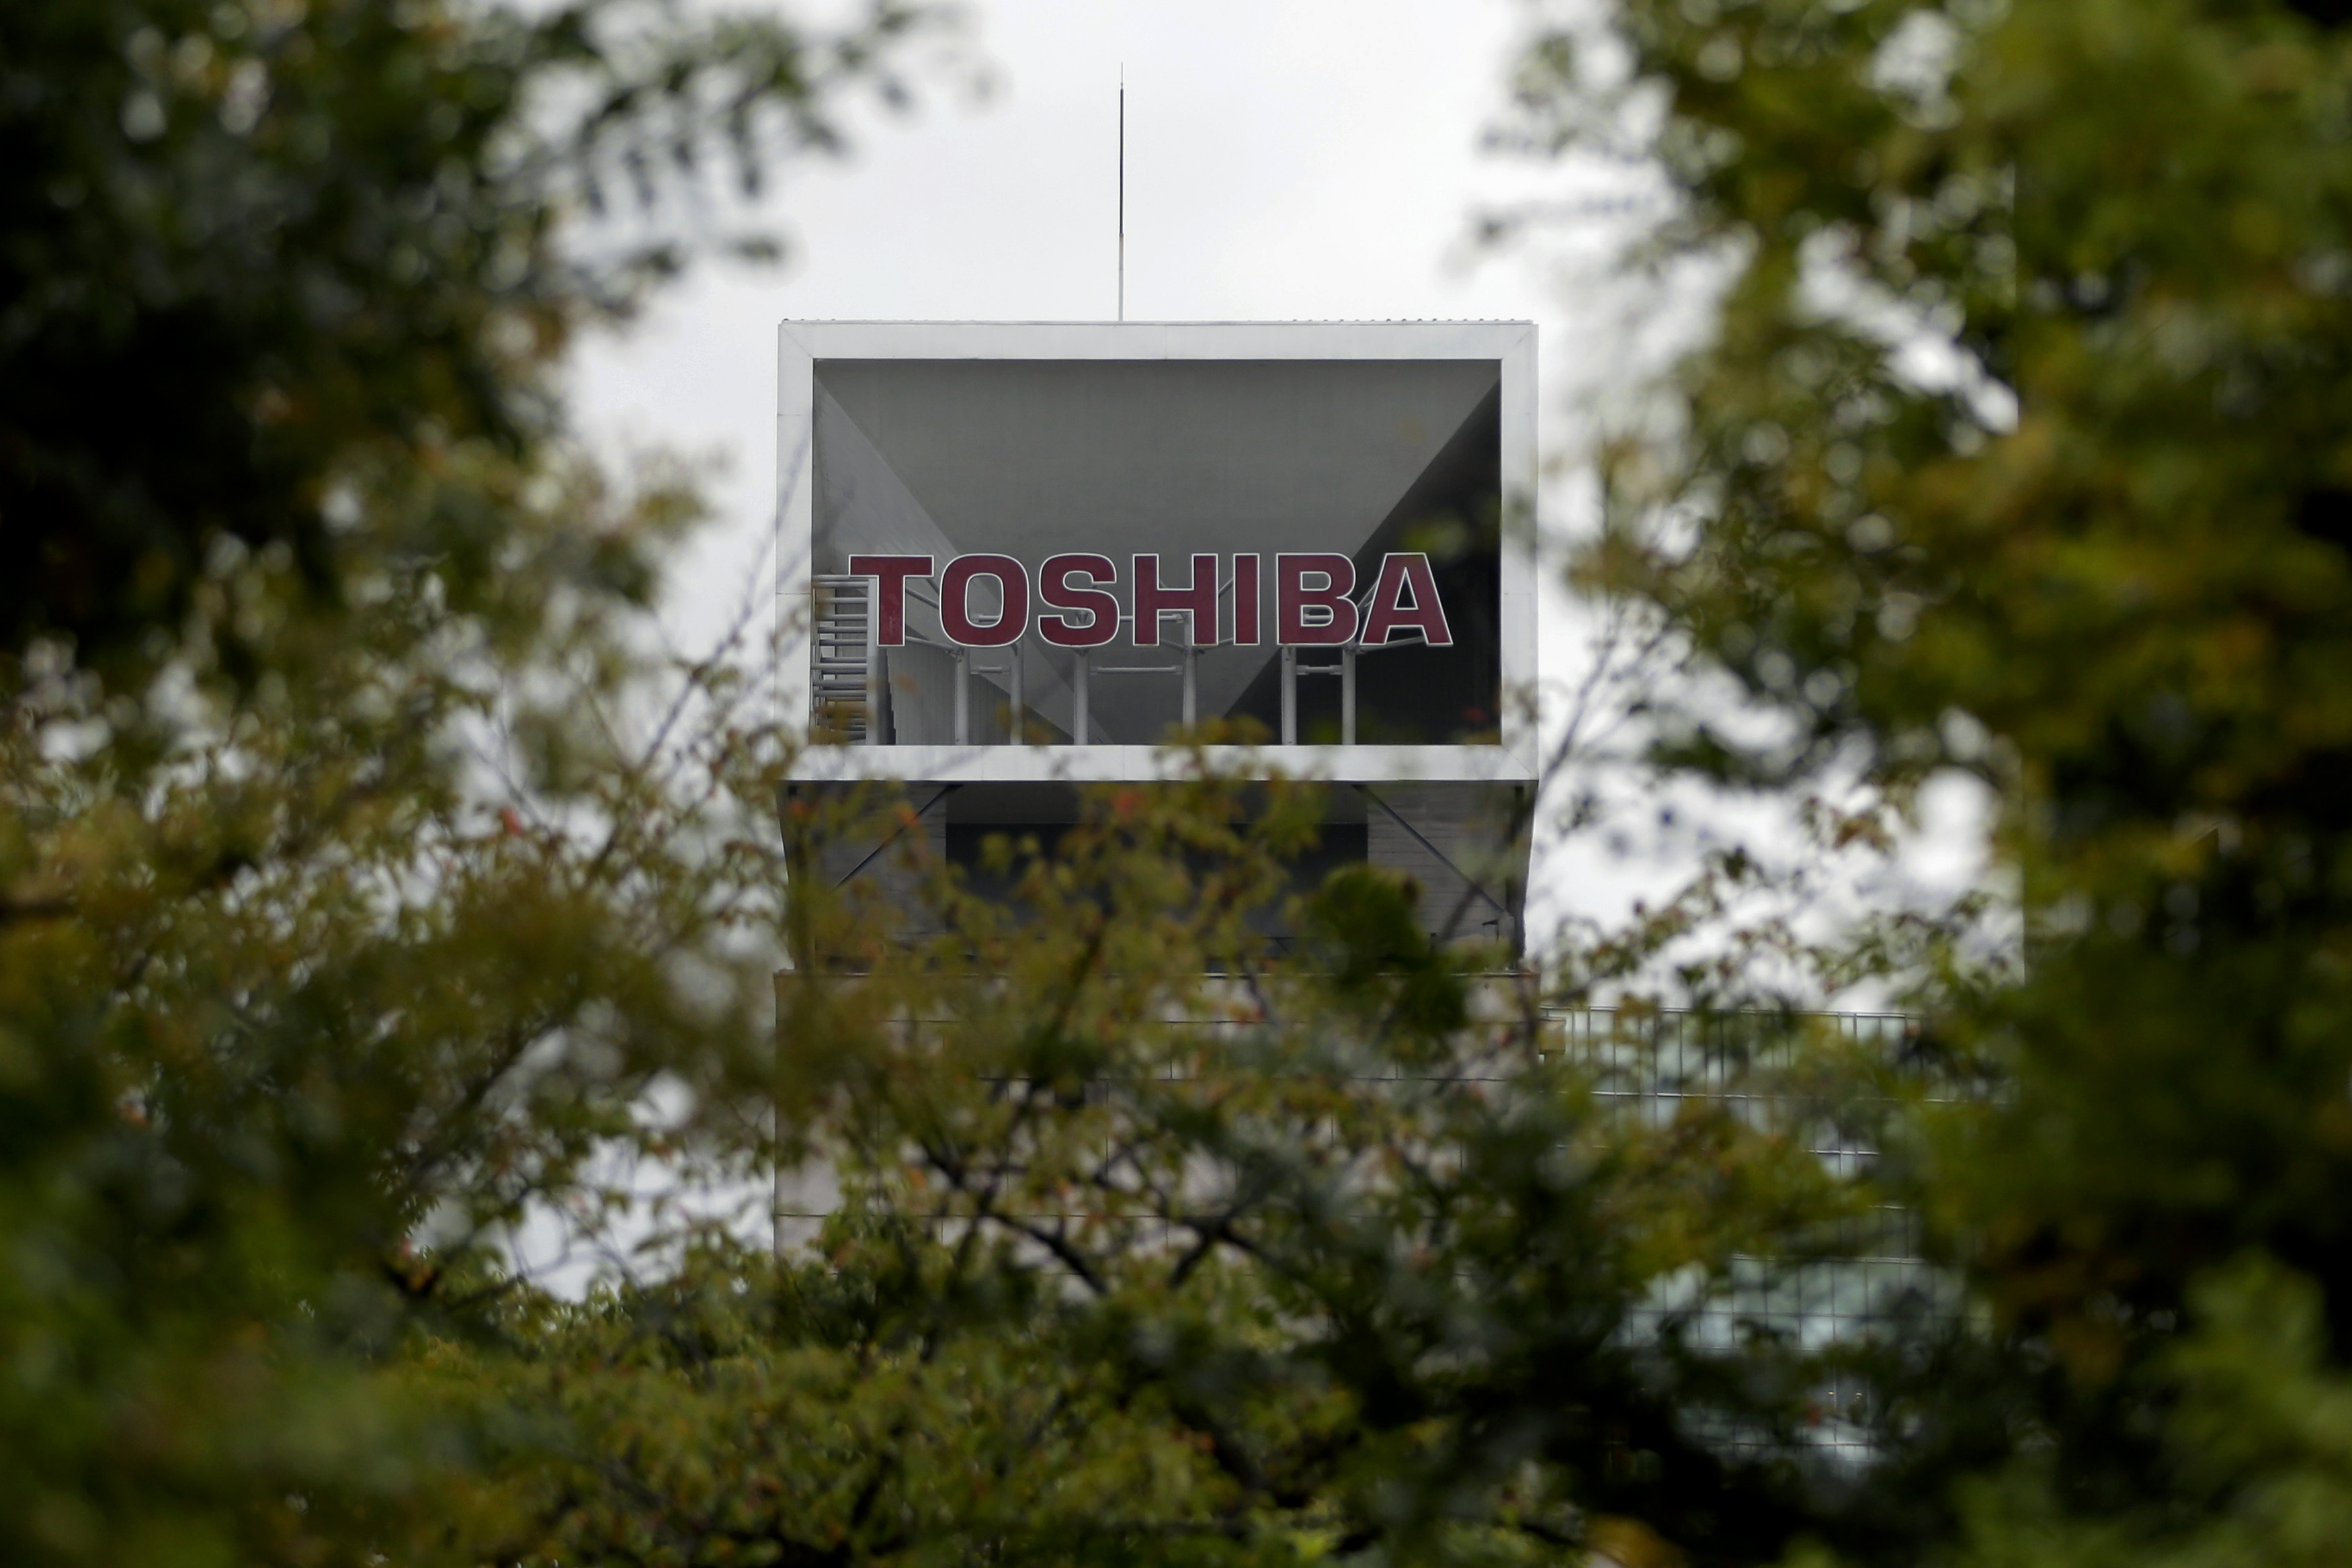 Toshiba Corp. President Masashi Muromachi Group Interview